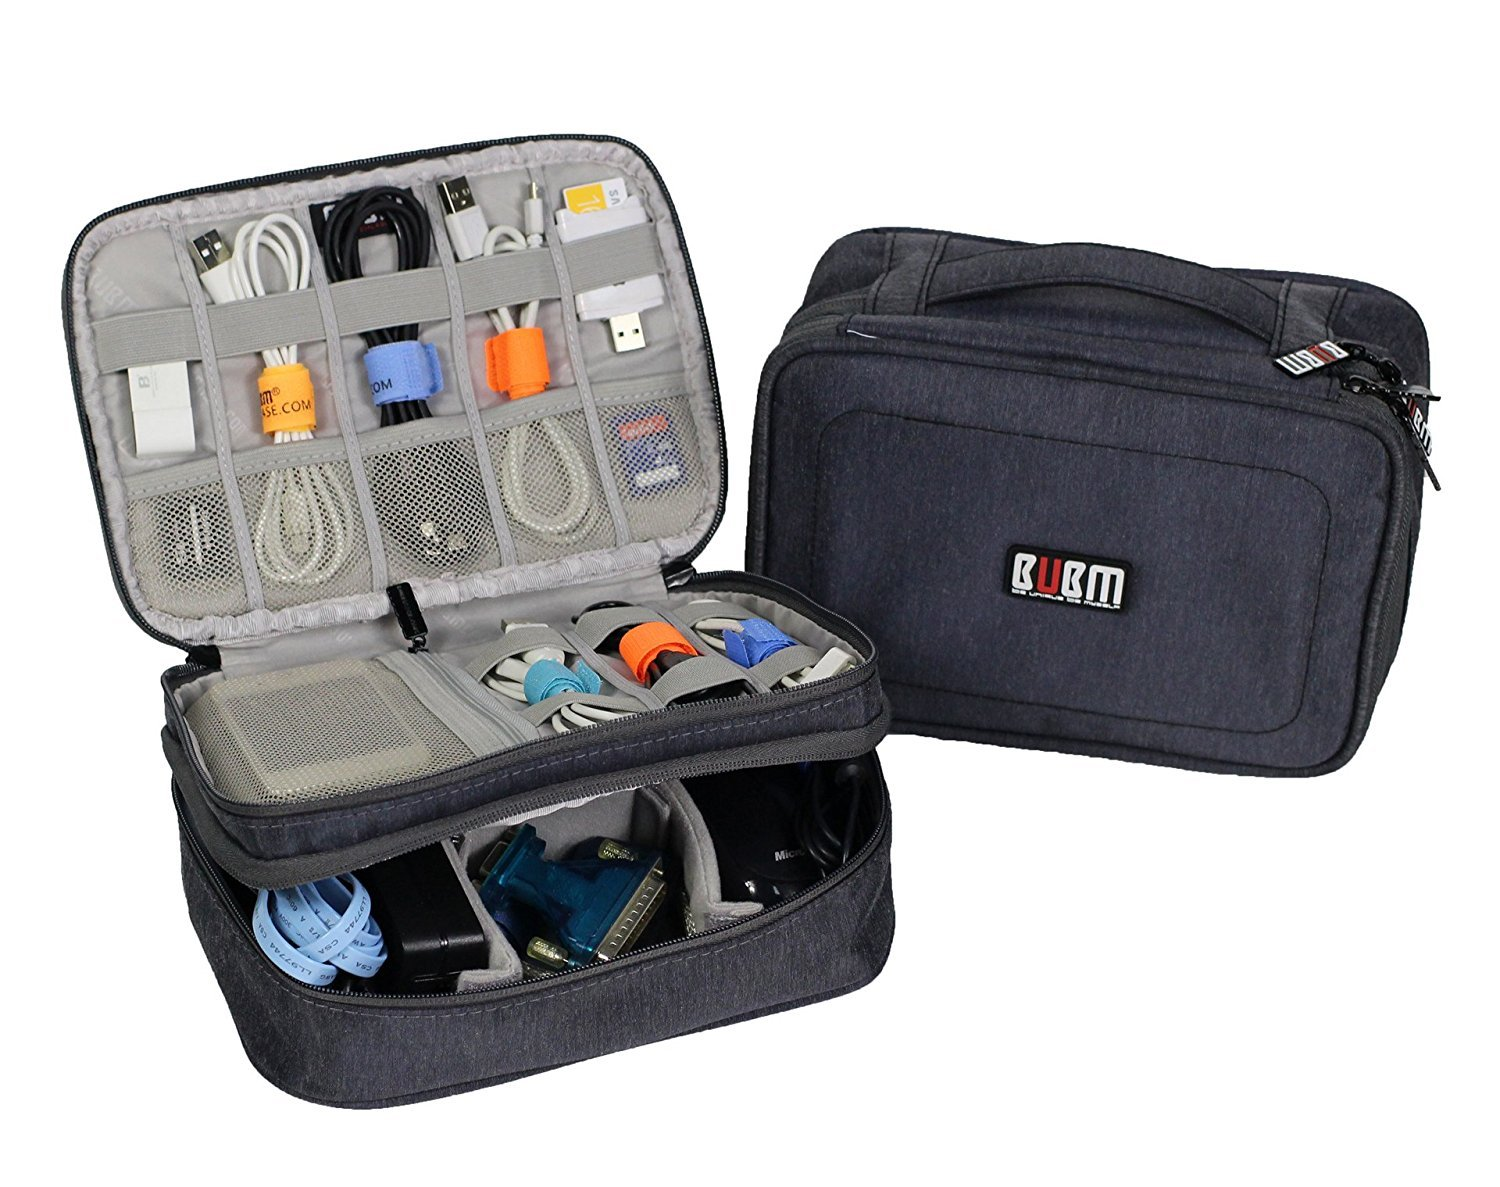 BUBM Electronics Travel Organizer Storage Bag for Accessories Cable Cord (M, Blue)